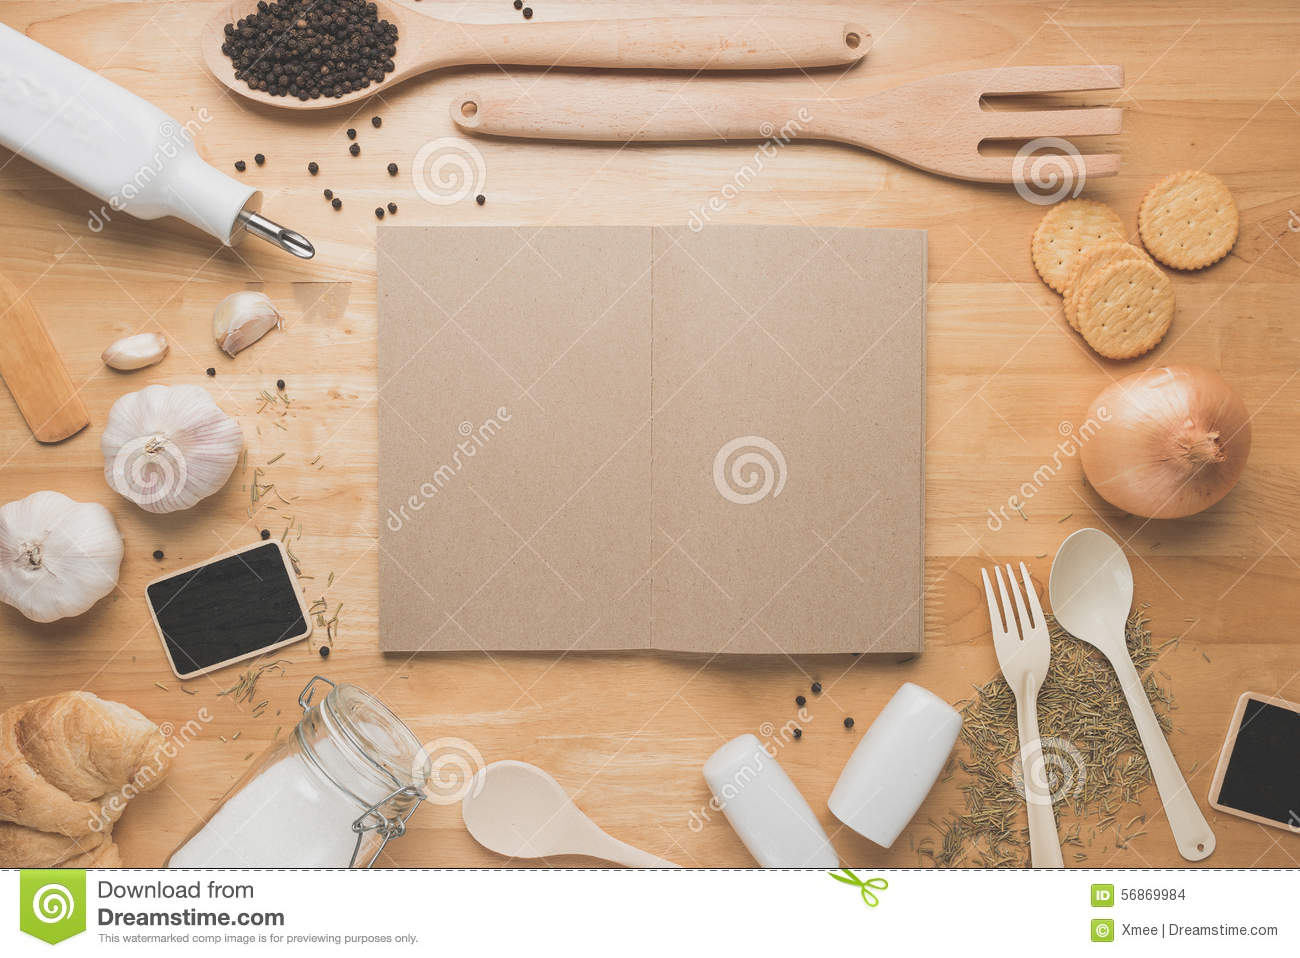 Kitchen View From Above : Top view kitchen mockup rural utensils on wooden